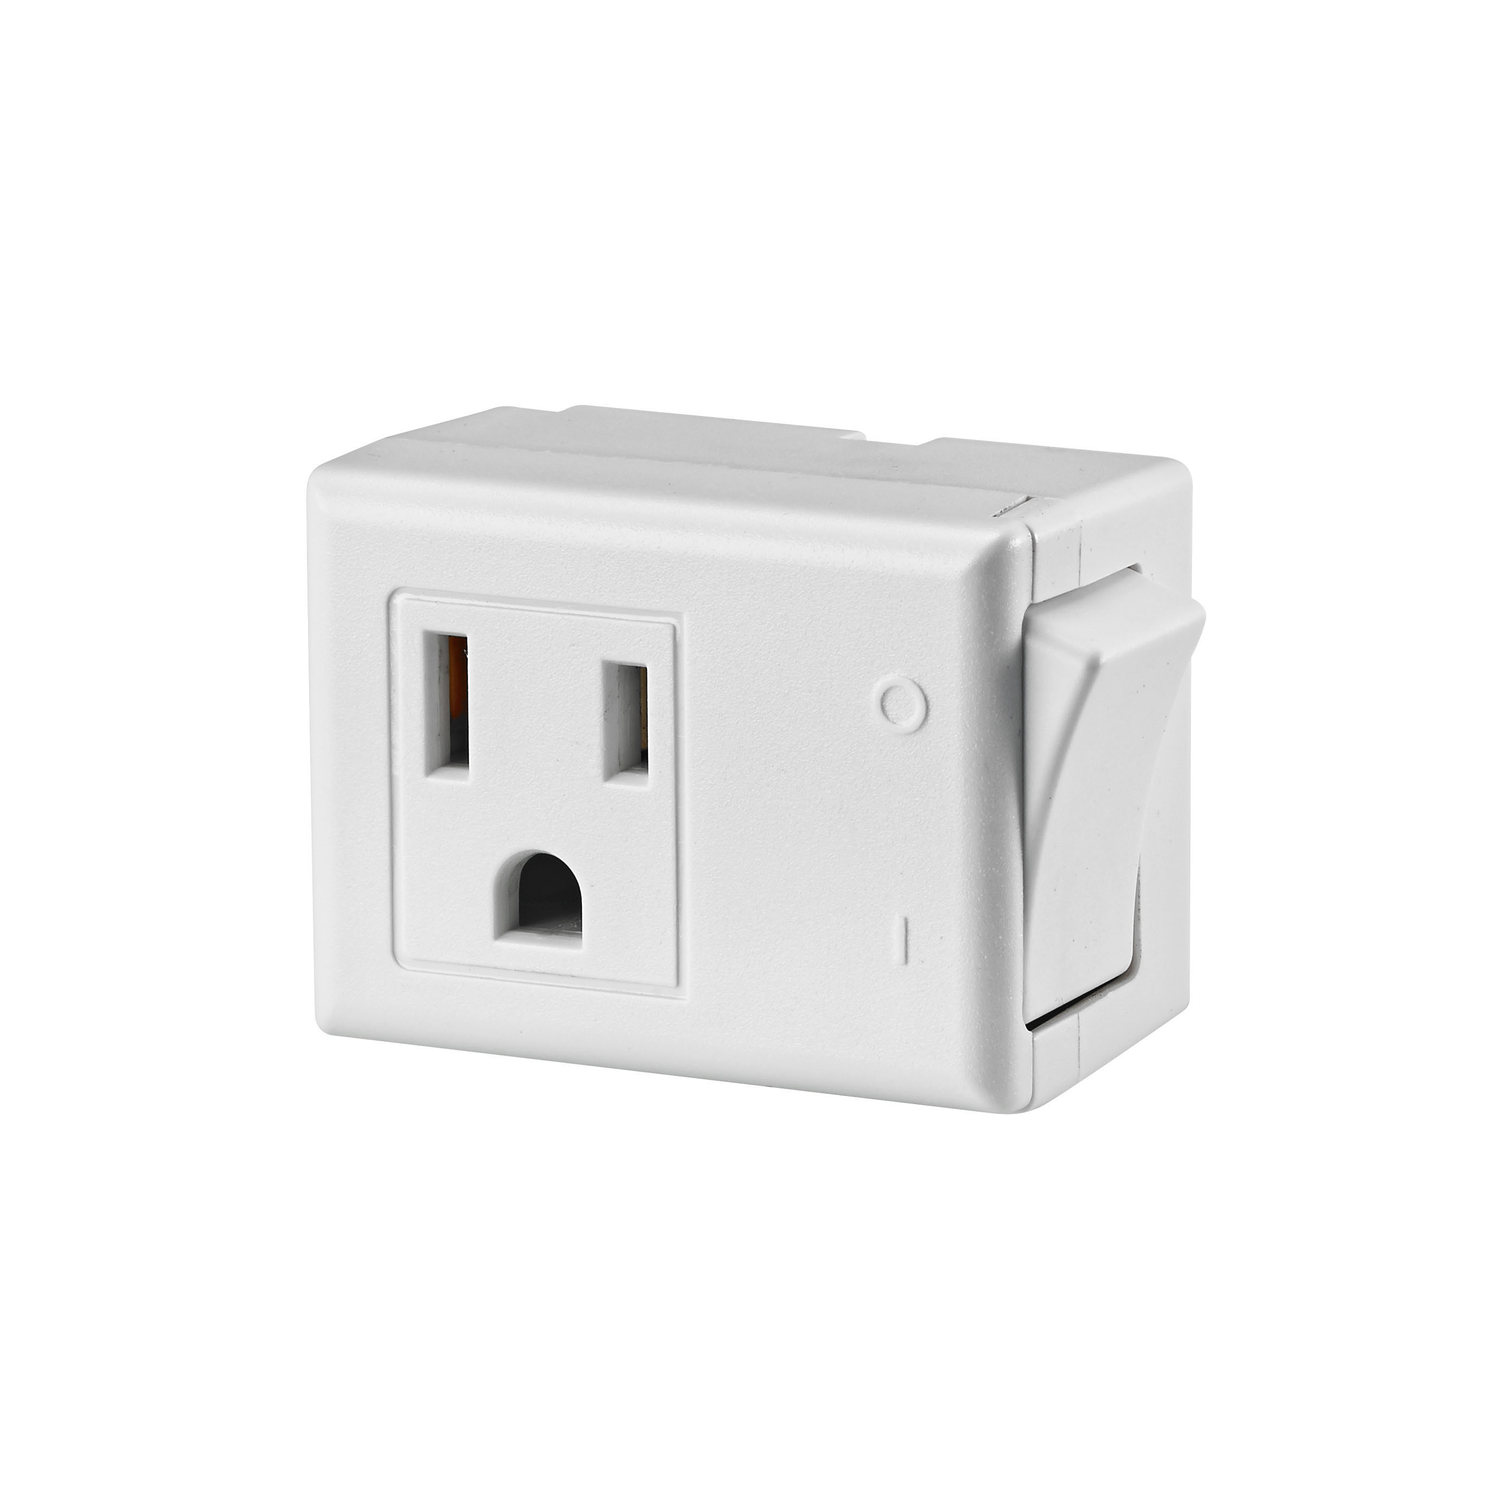 Leviton Grounded 3 outlets Switch Tap Adapter 1 pk Surge Protection ...